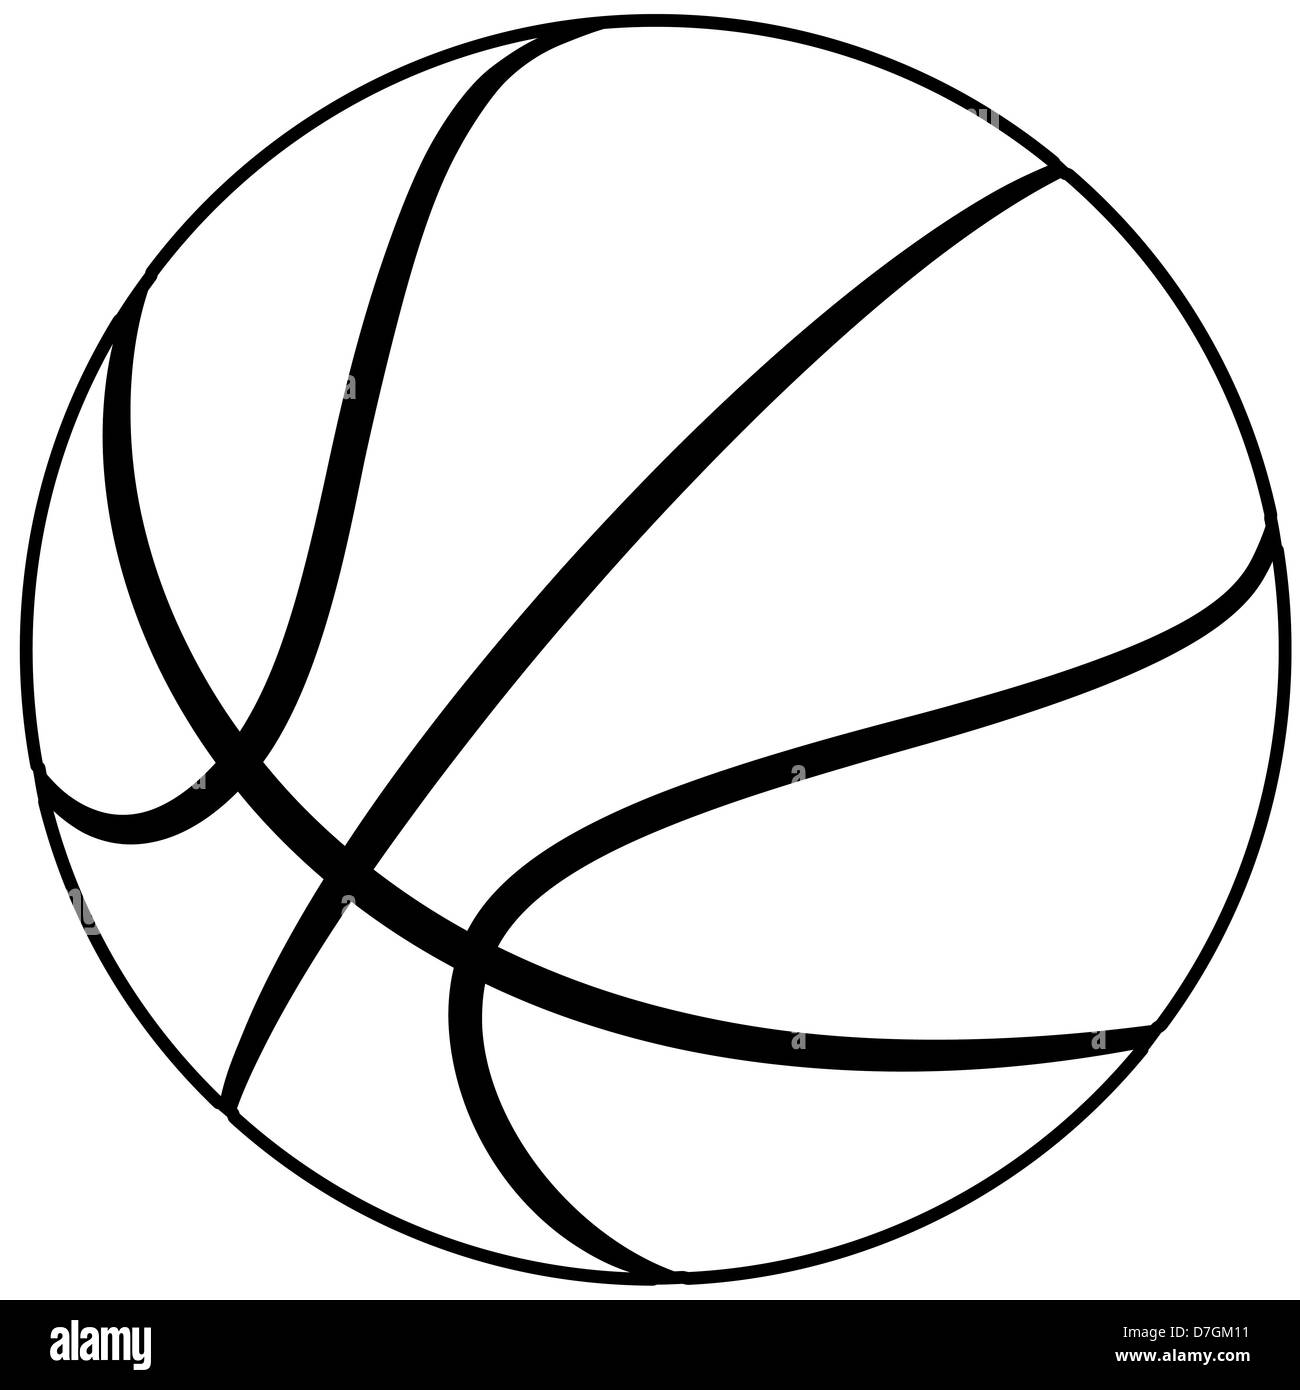 illustration of a basketball outline isolated in white background. - Stock Image